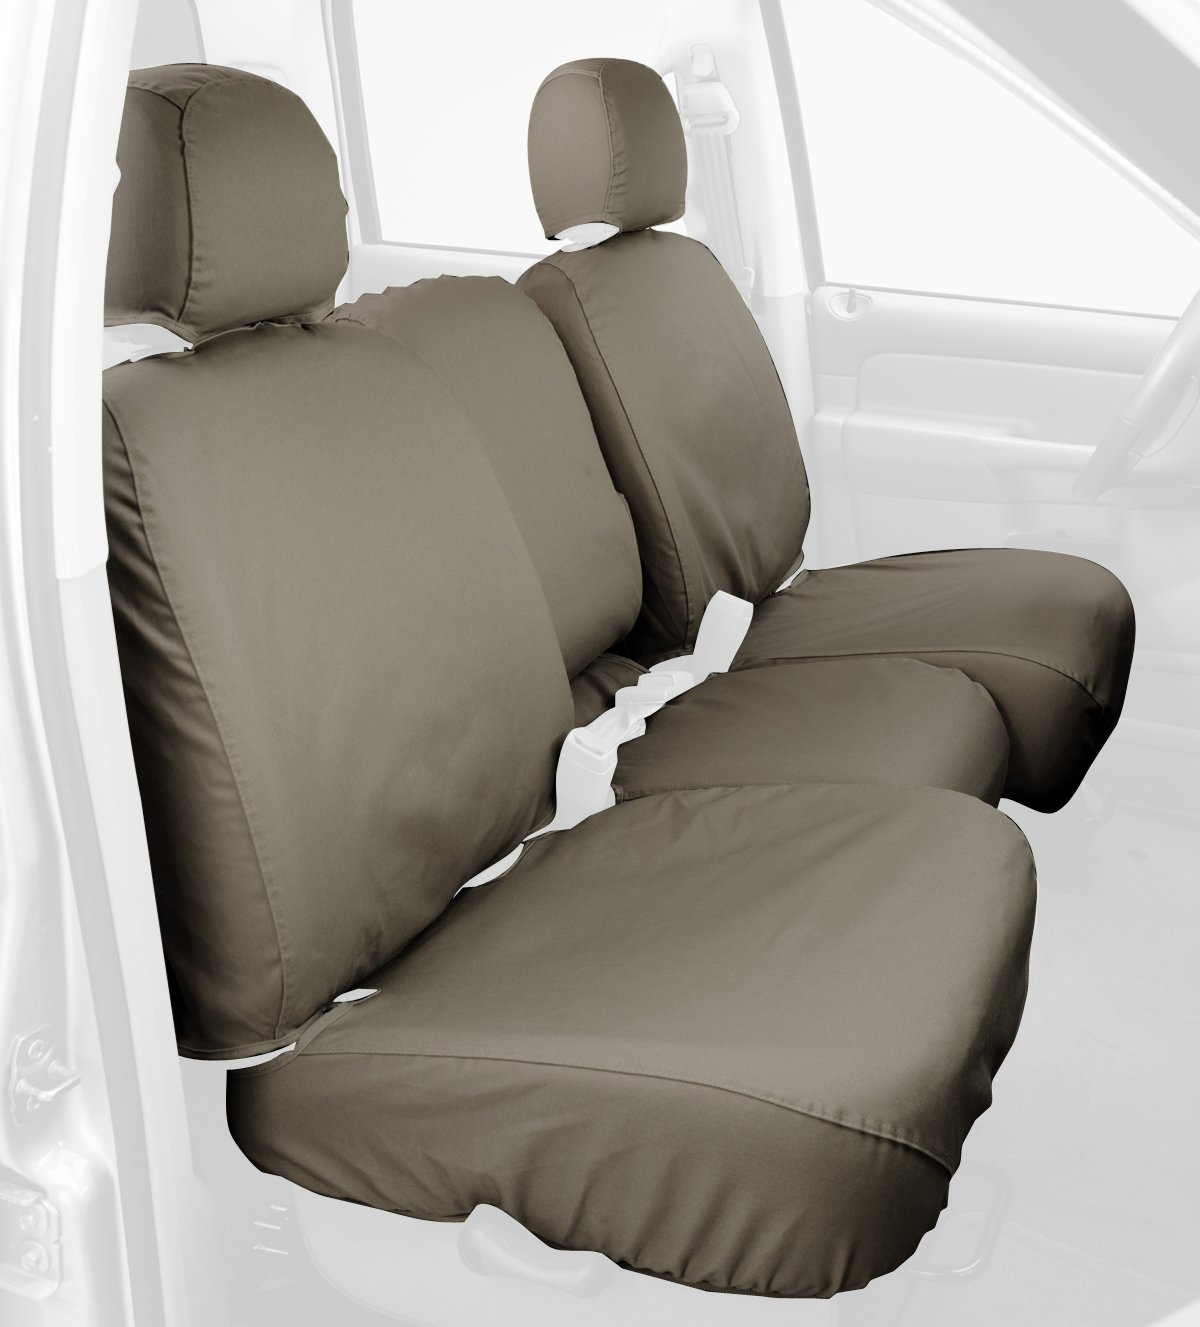 Polycotton Fabric Covercraft SS3381PCCT Custom-Fit Front Bench SeatSaver Seat Covers Misty Grey